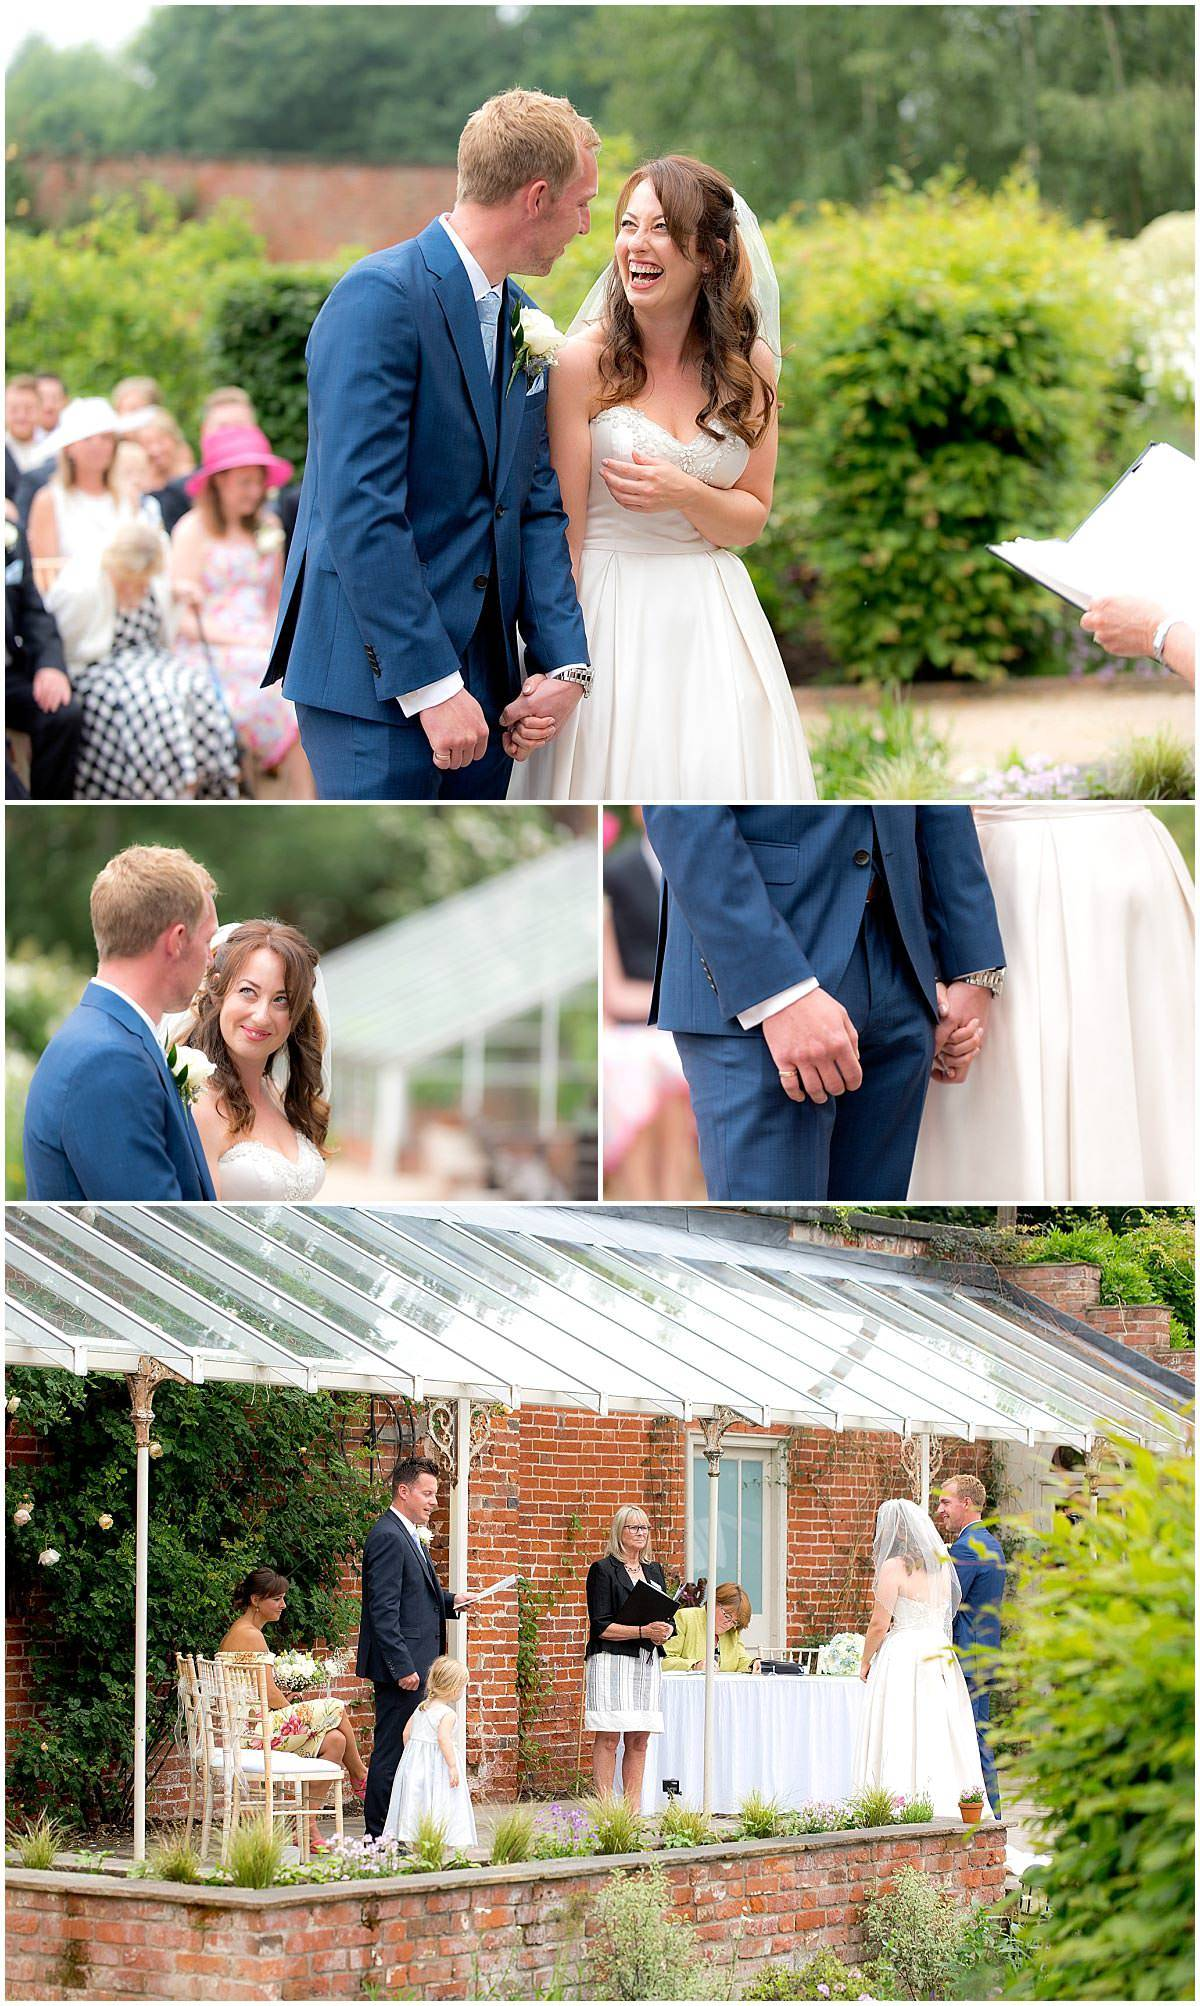 The Walled Gardens Outdoor Wedding ceremony